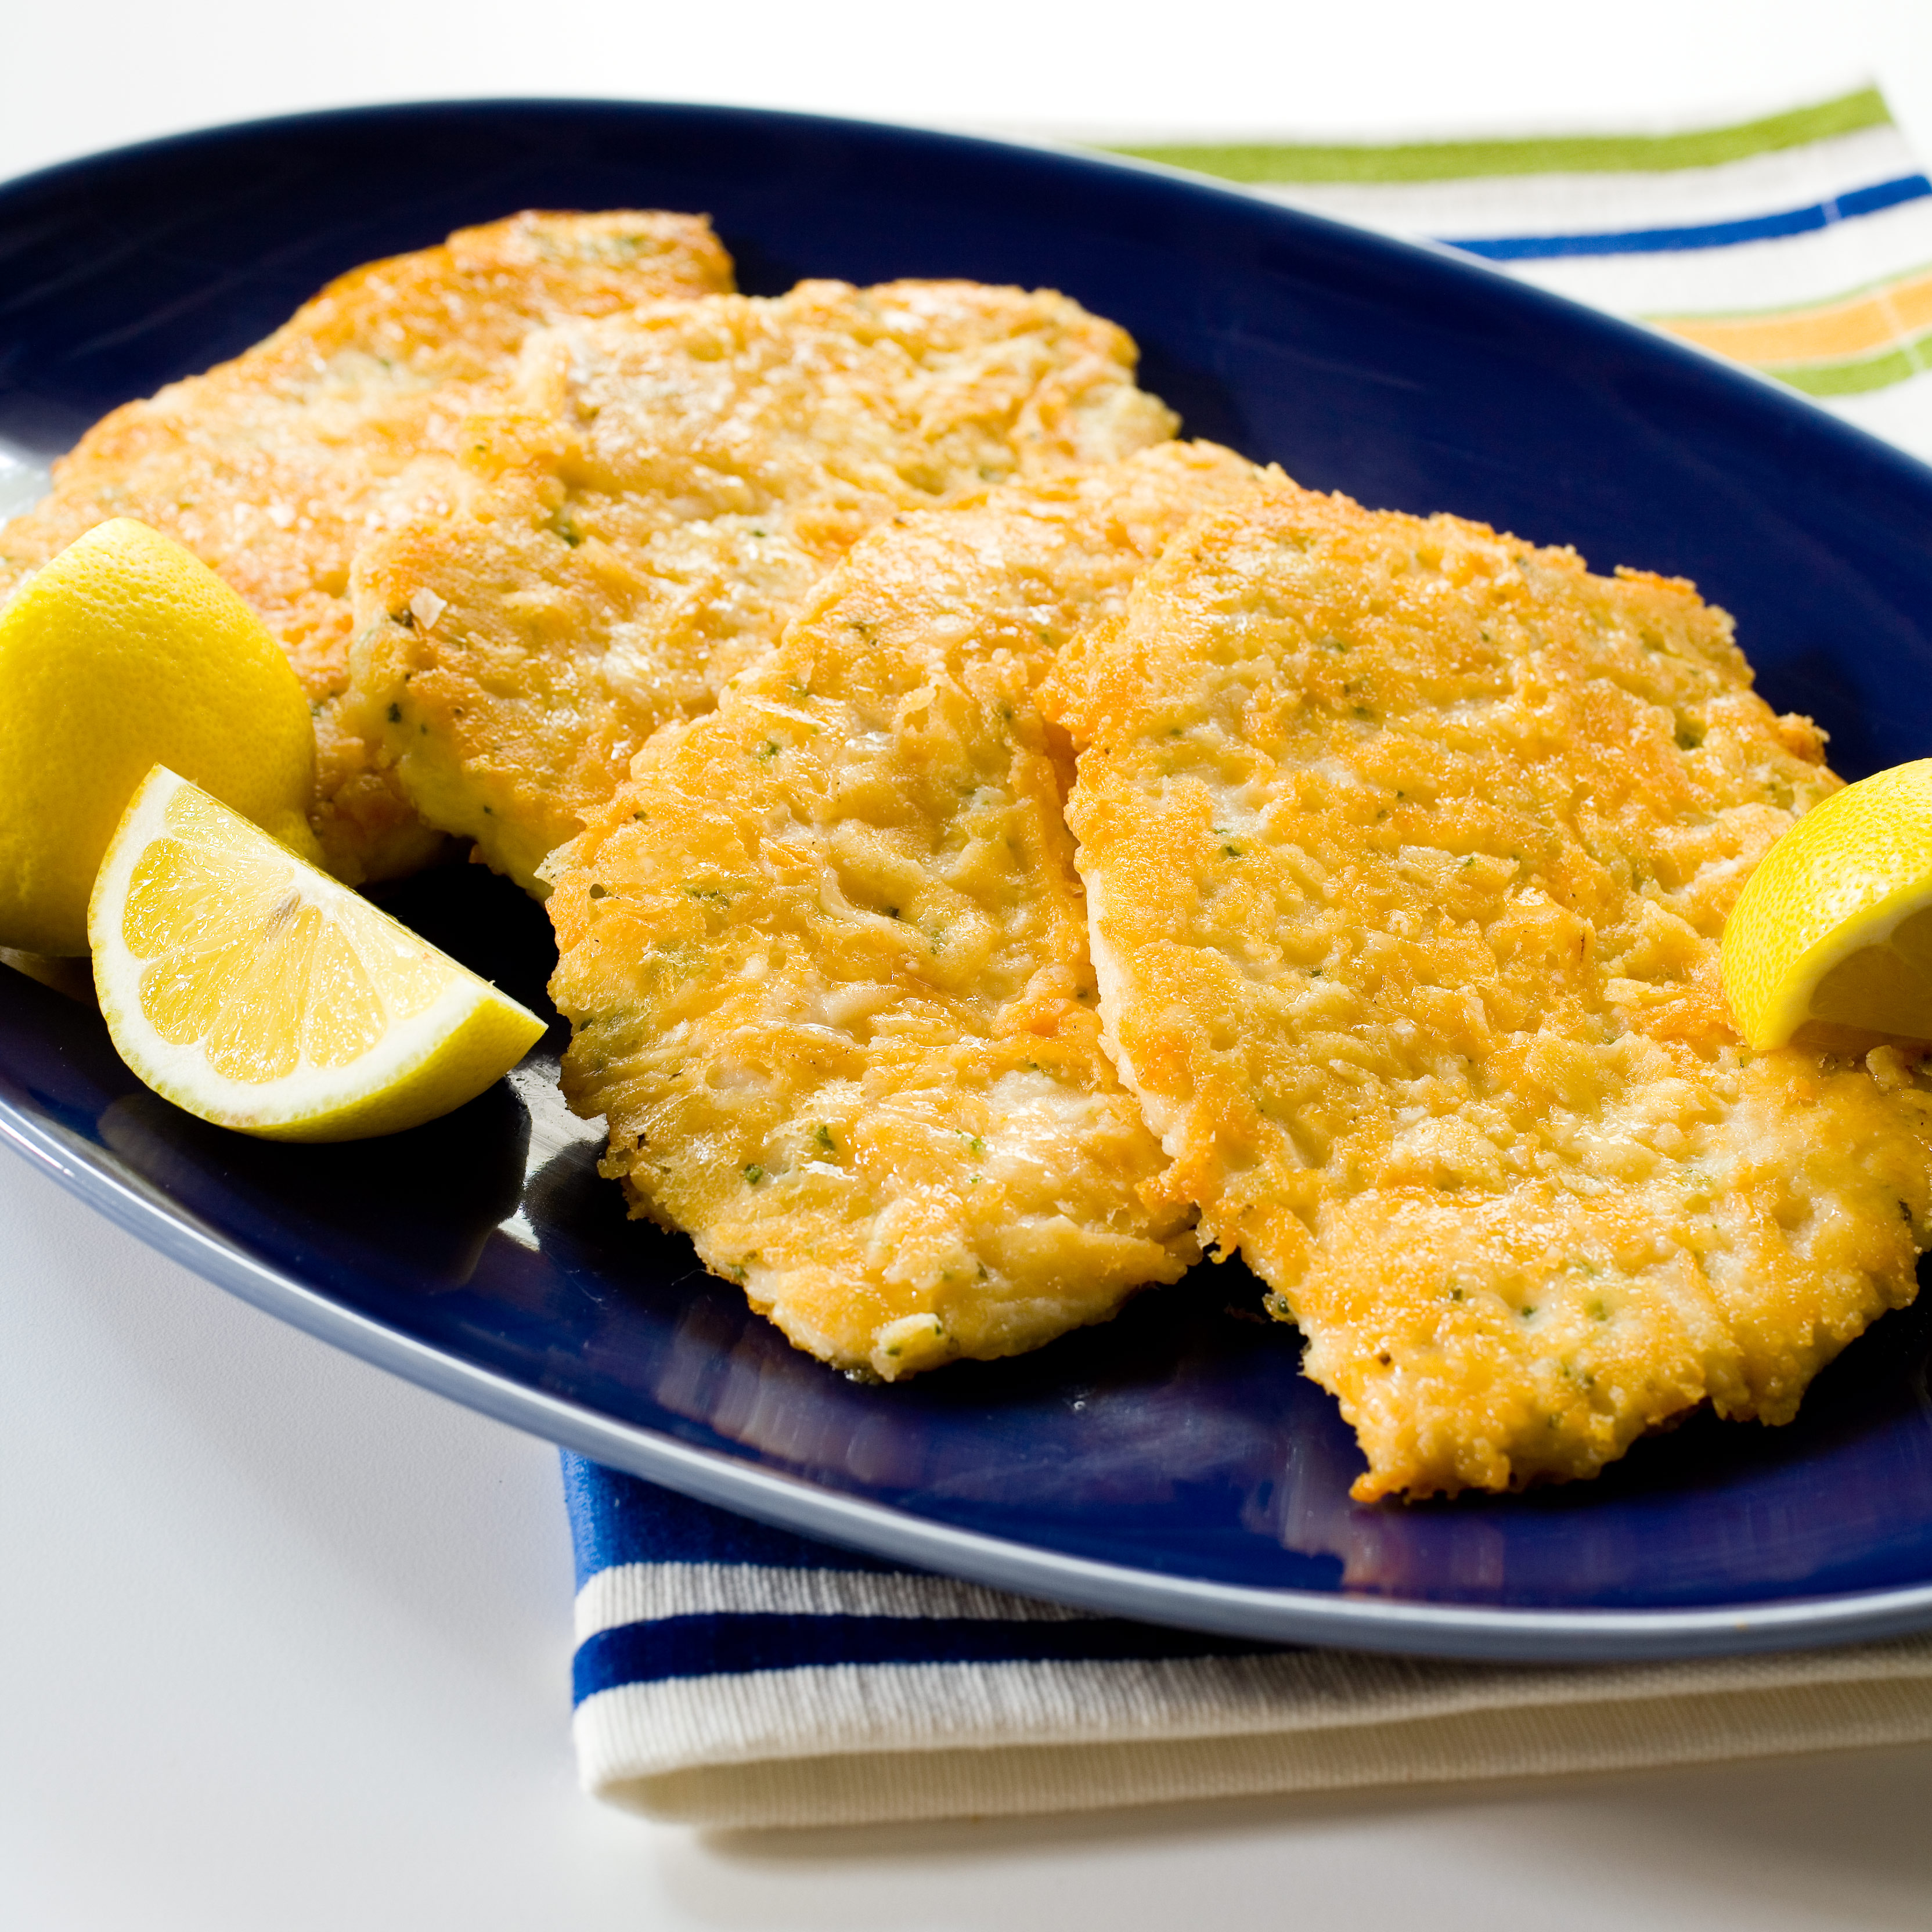 Parmesan crusted chicken cutlets americas test kitchen forumfinder Choice Image